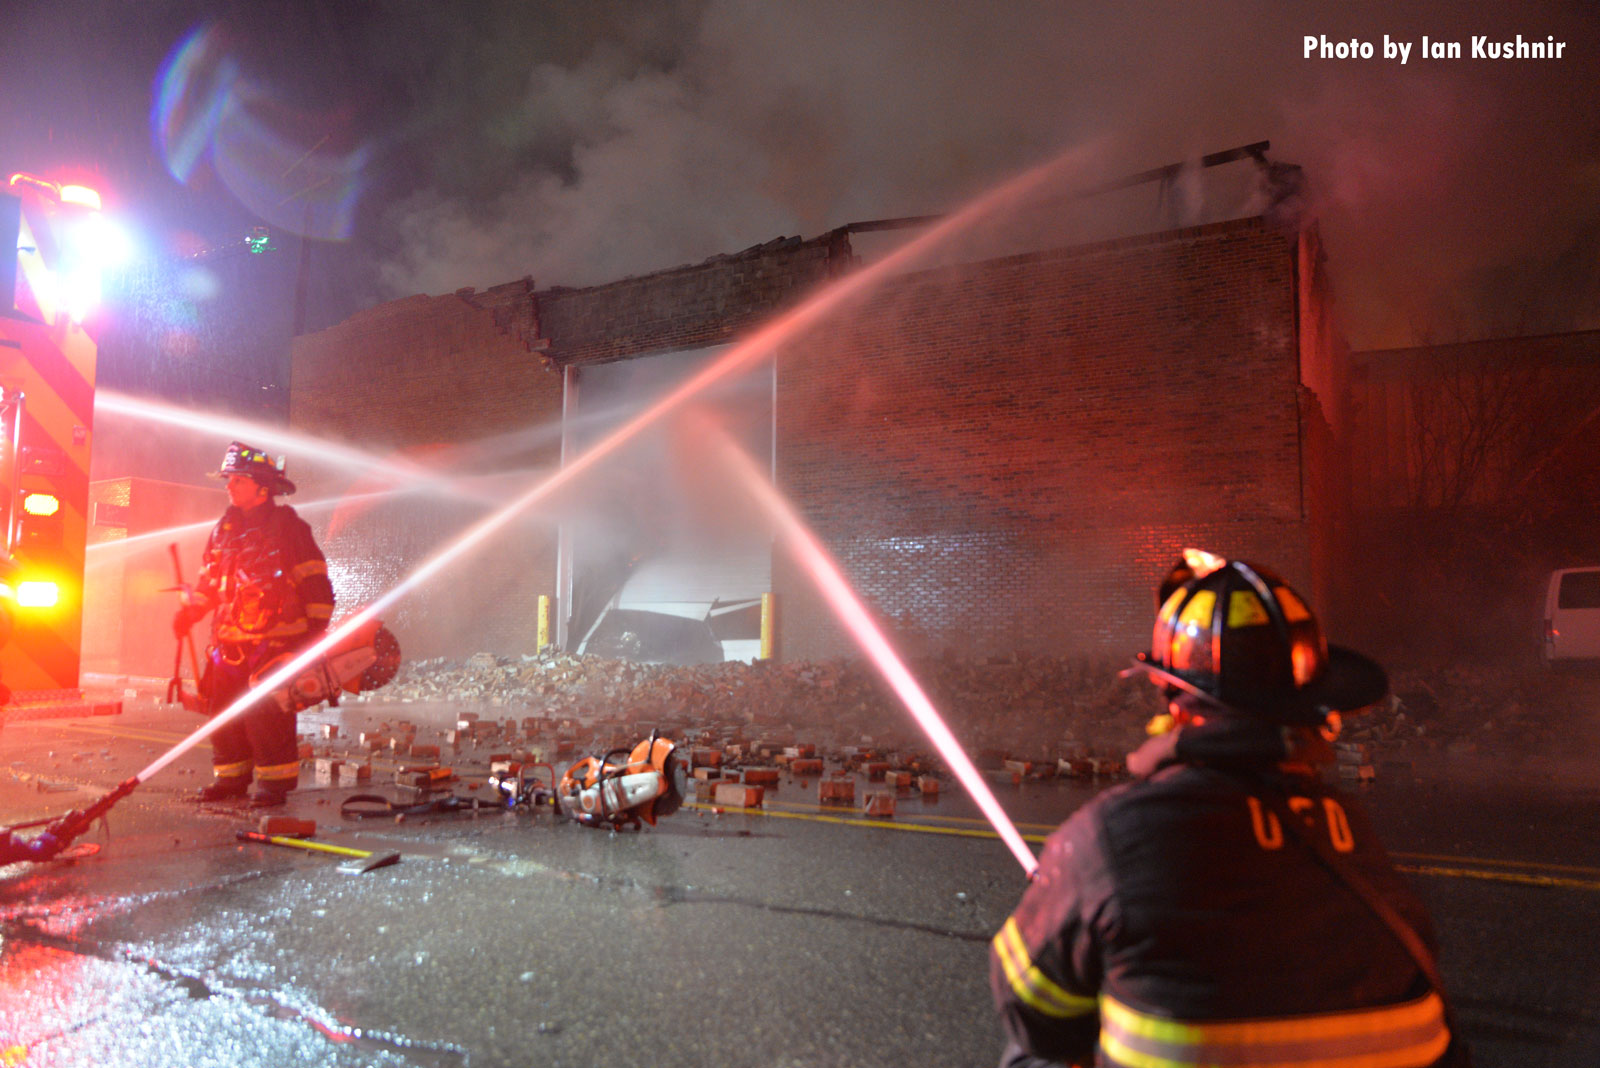 Firefighters apply water to the fire